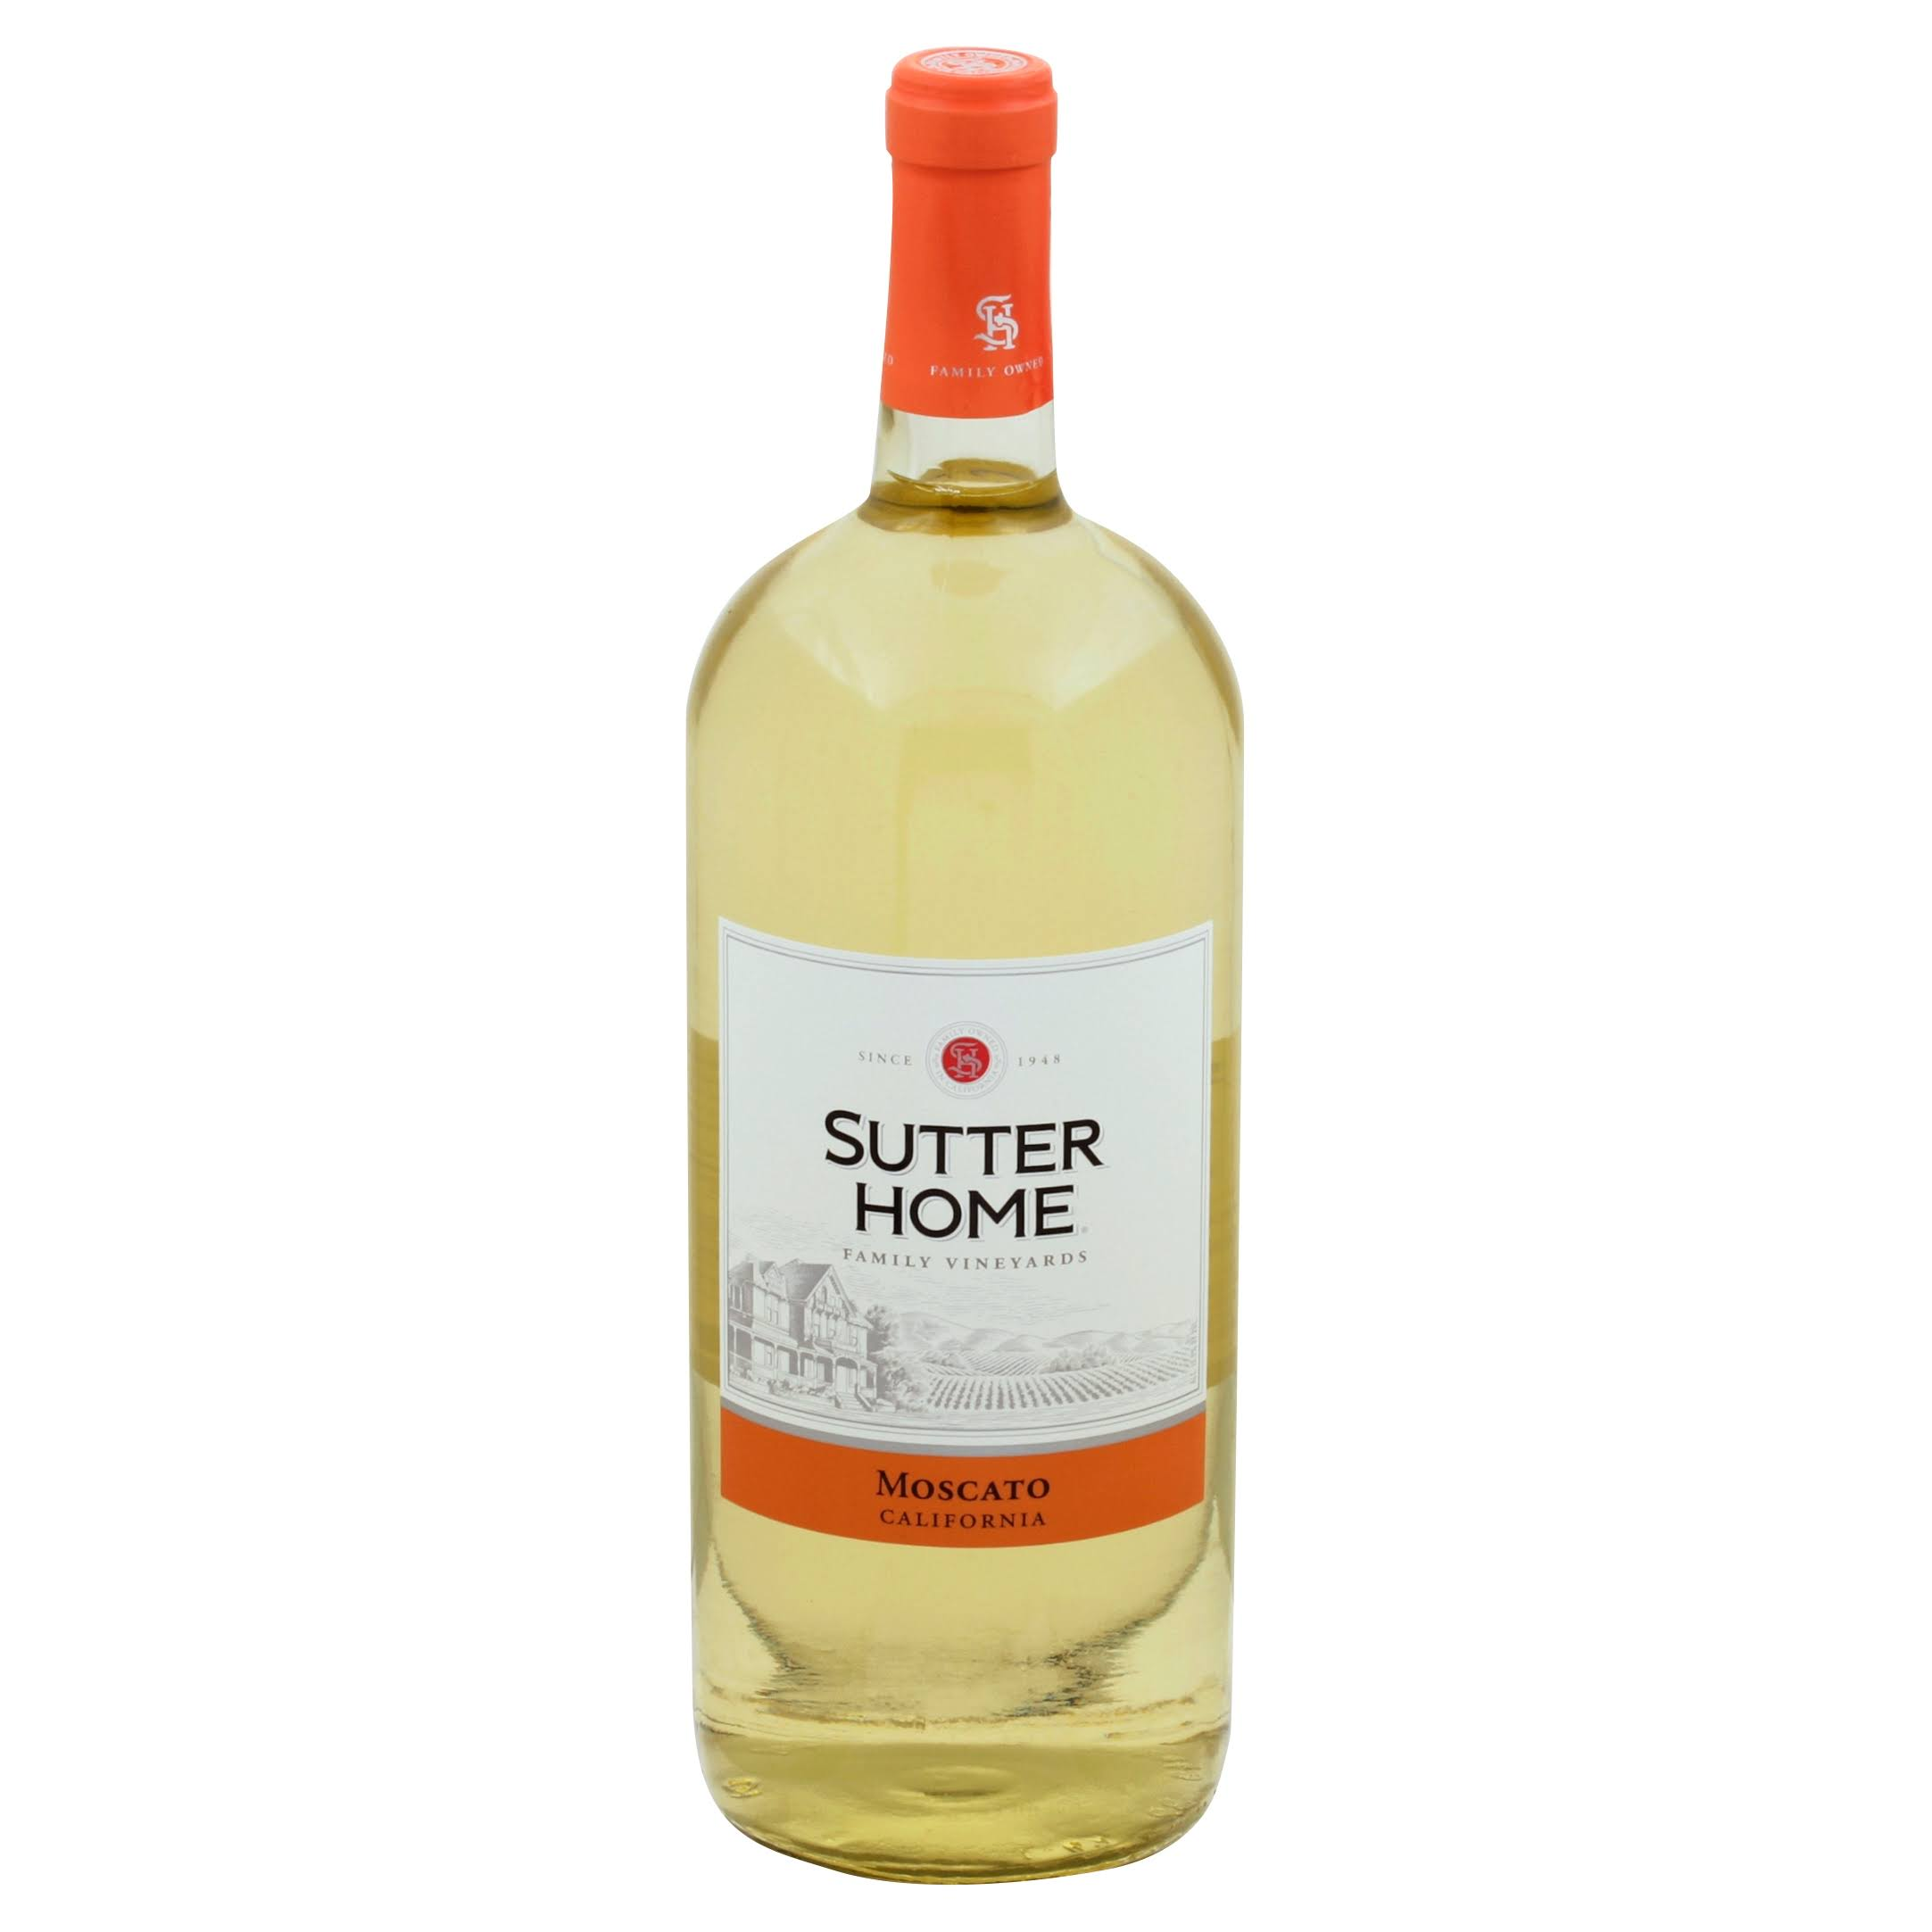 Sutter Home Moscato, California - 1.5 l